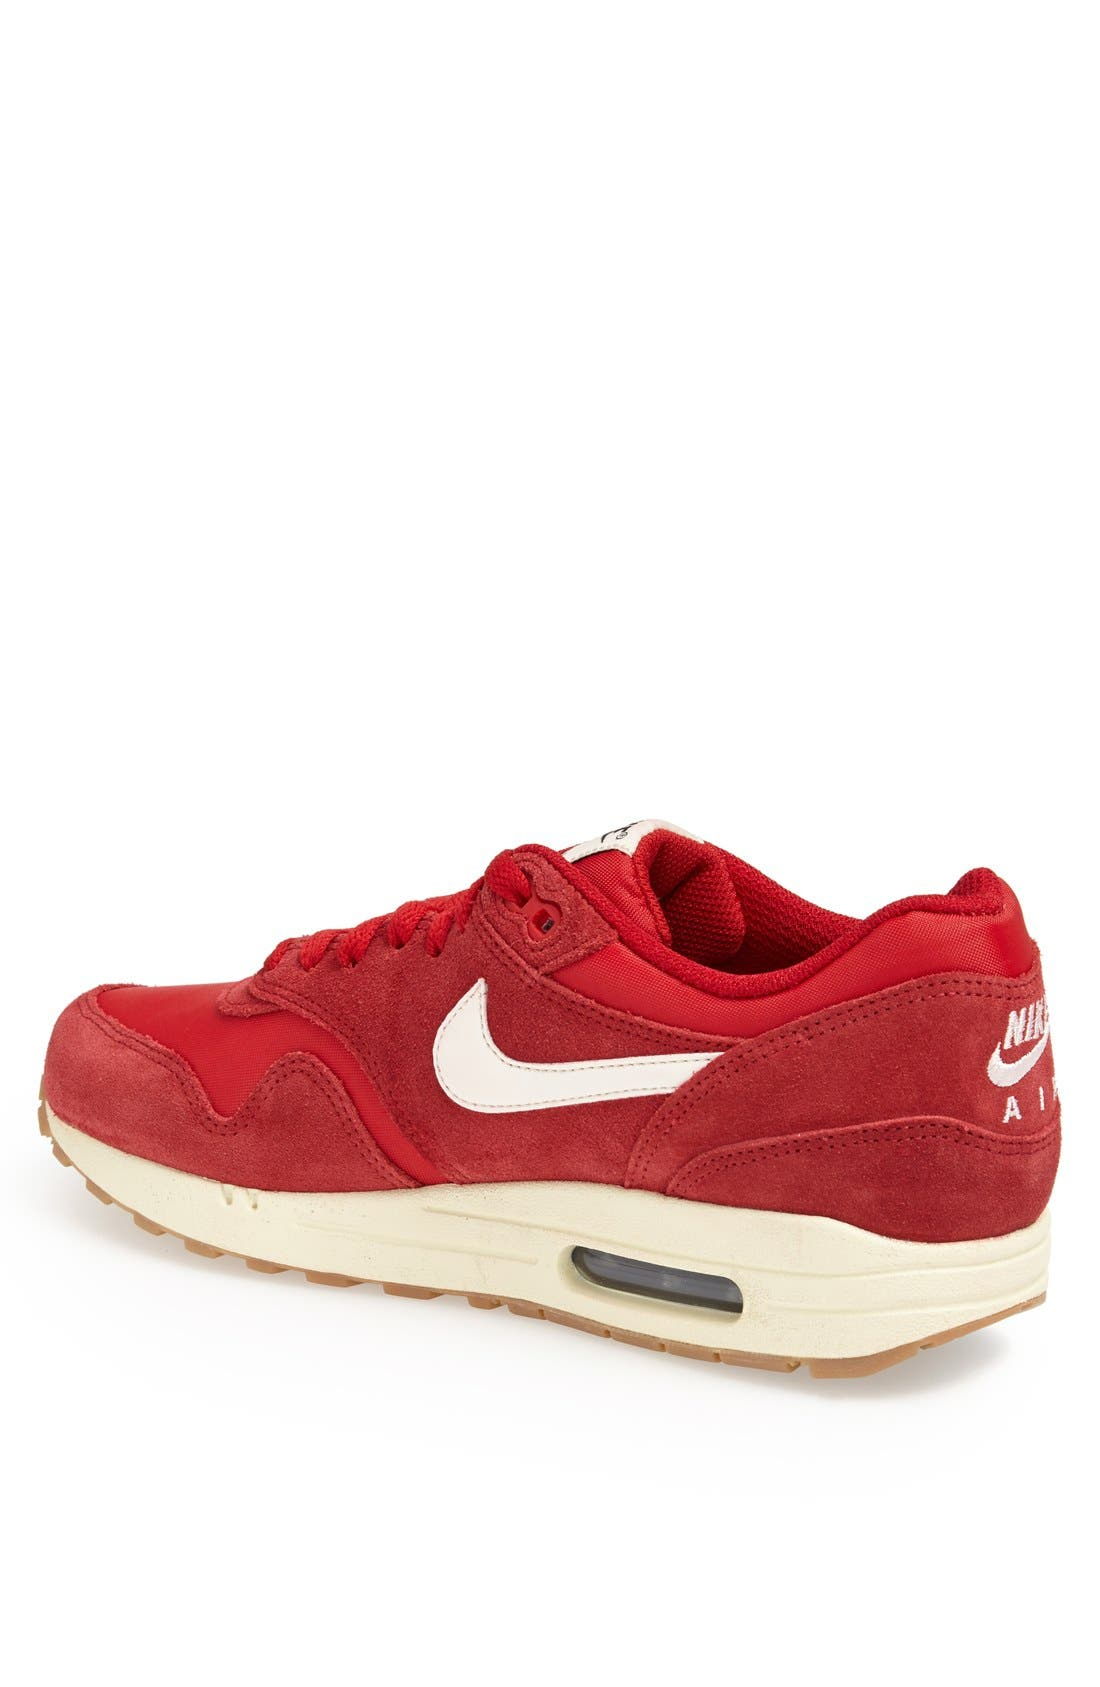 ,                             'Air Max 1 Essential' Sneaker,                             Alternate thumbnail 122, color,                             611